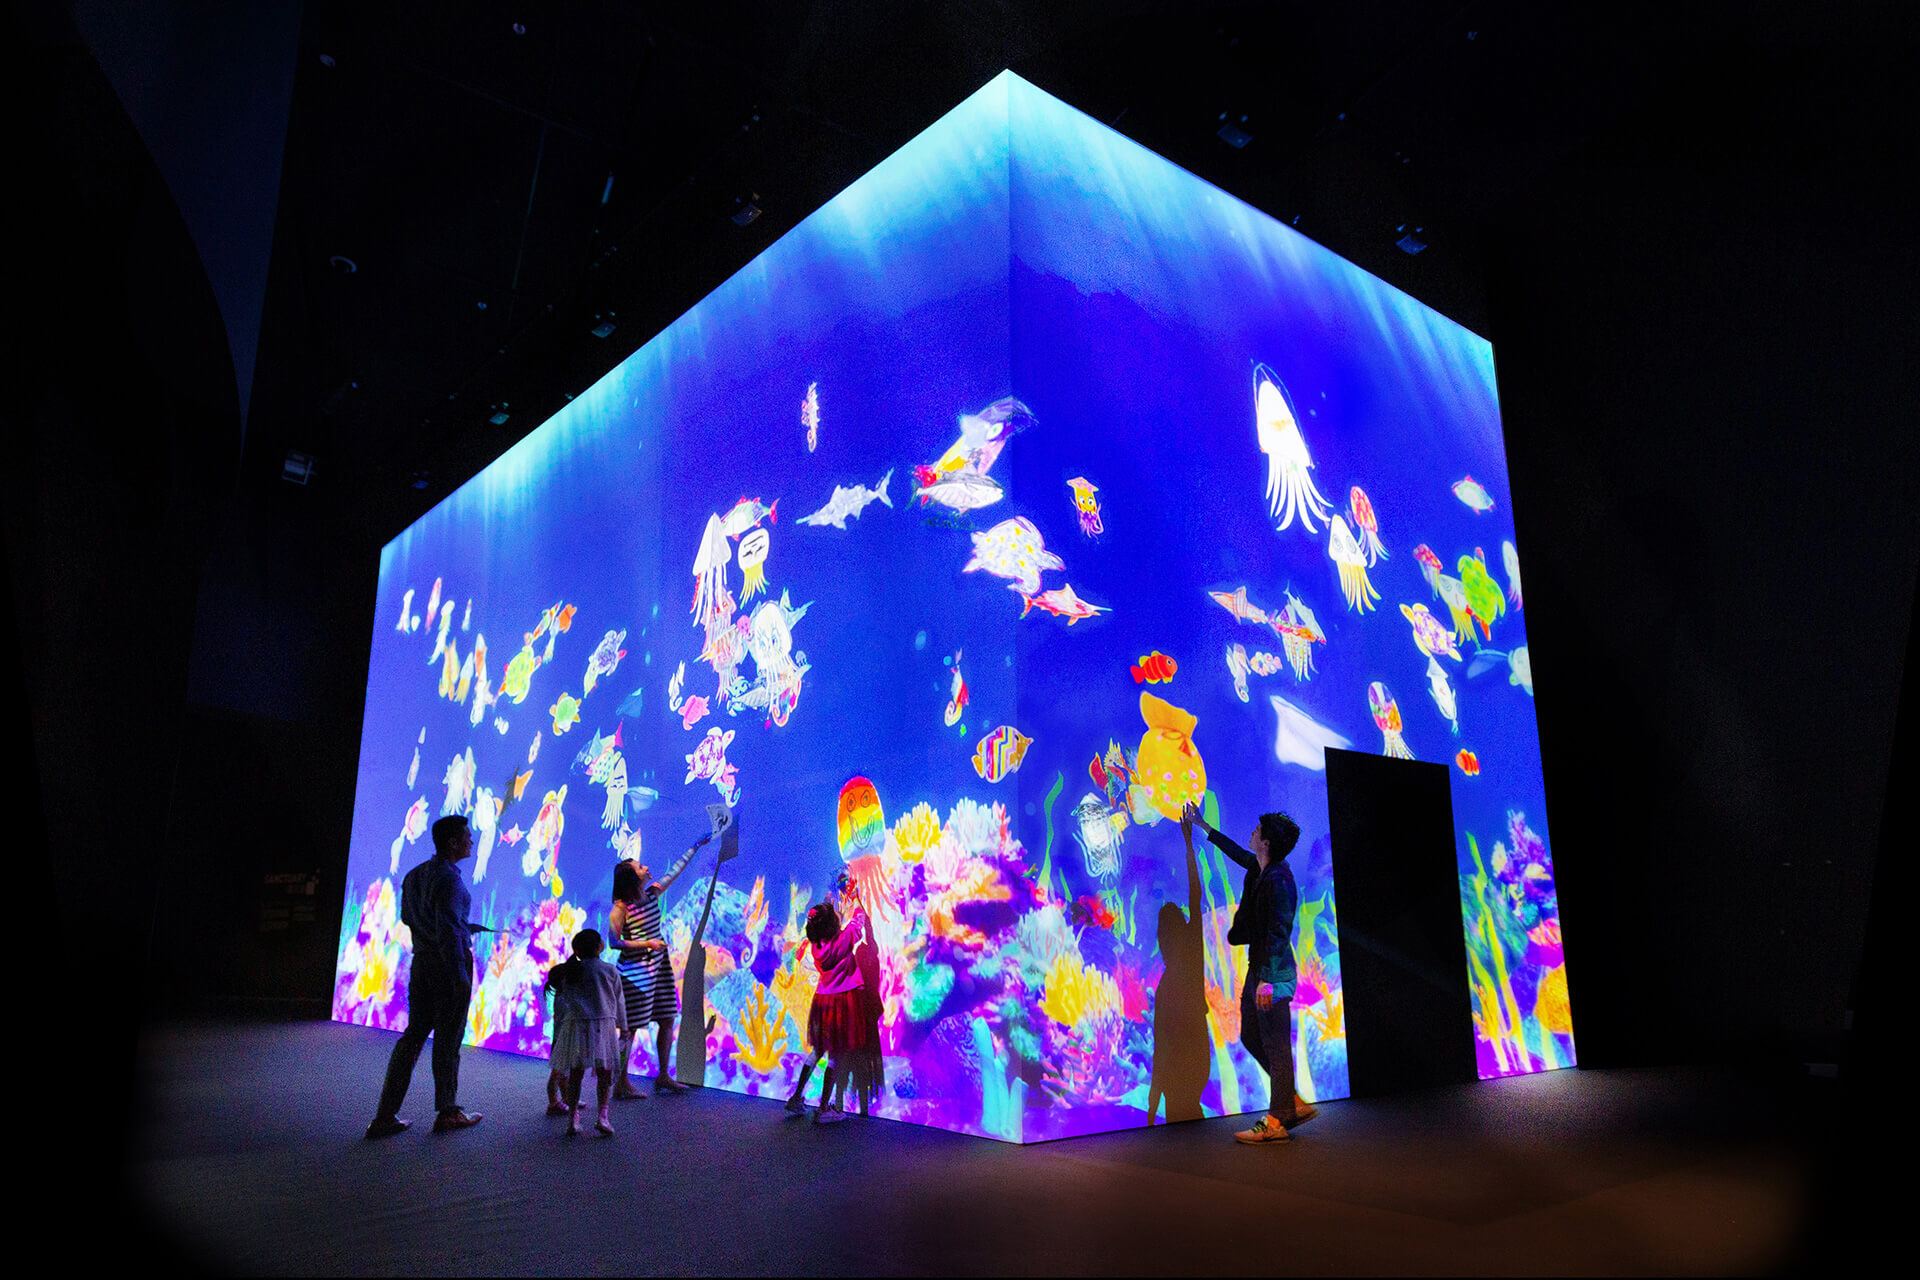 'Sketch Aquarium' is an installation by teamLab at ArtScience Museum Singapore | Future World by teamLab | STIRworld